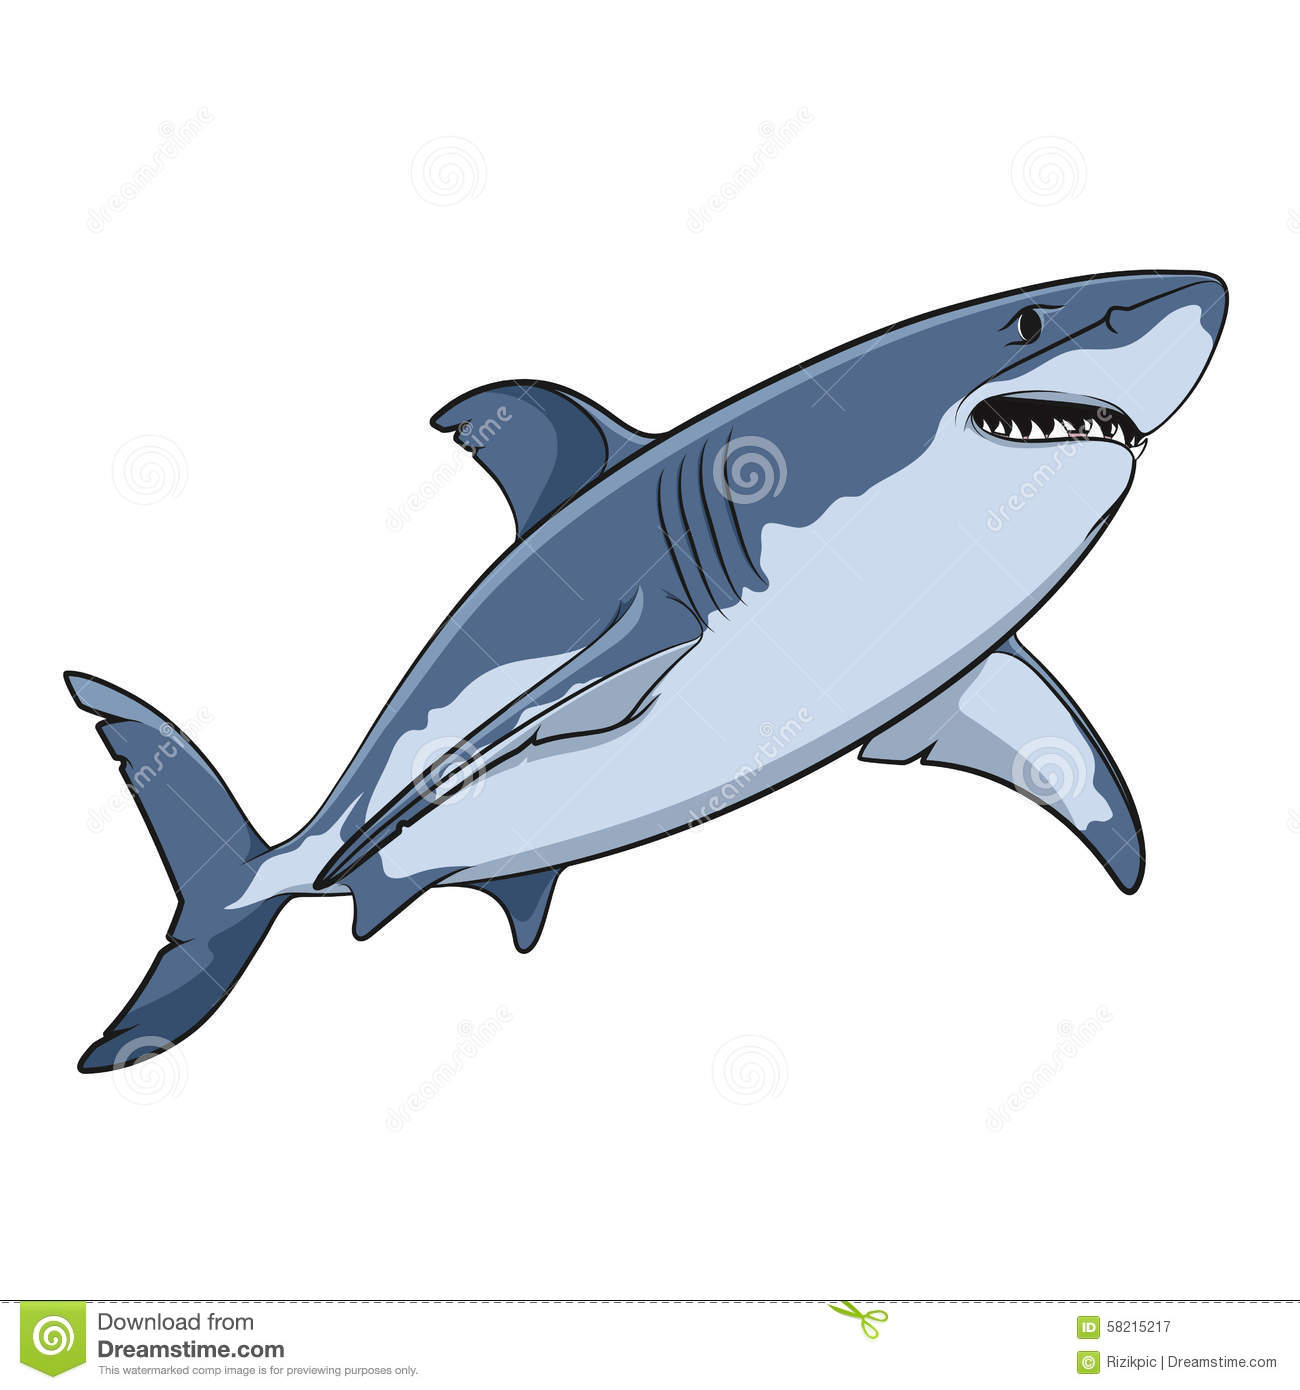 Dessin de vecteur d 39 un grand requin blanc illustration de - Dessin d un requin ...